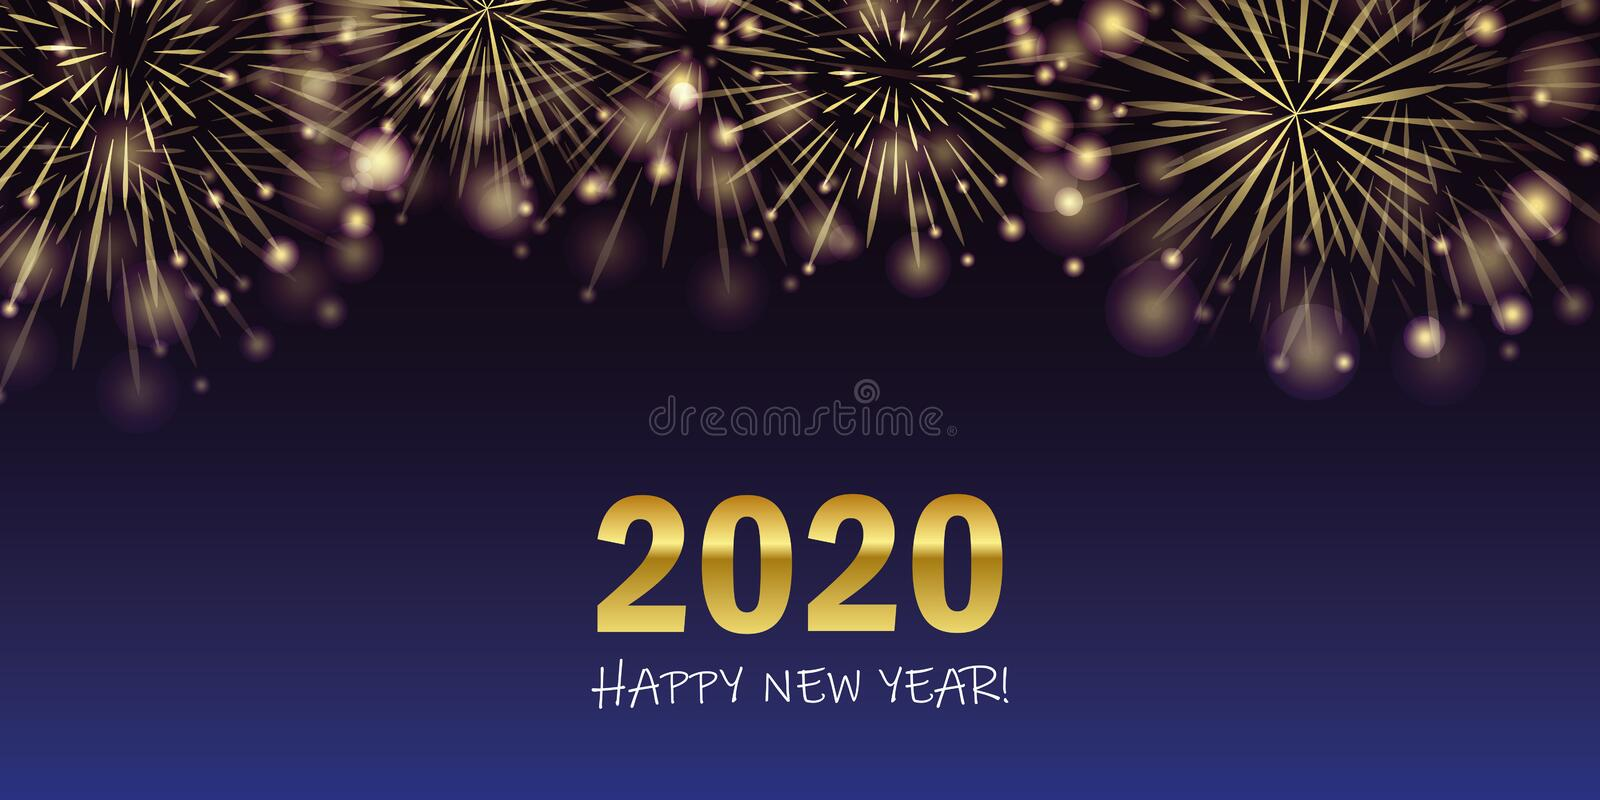 Happy new year 2020 golden firework background vector illustration